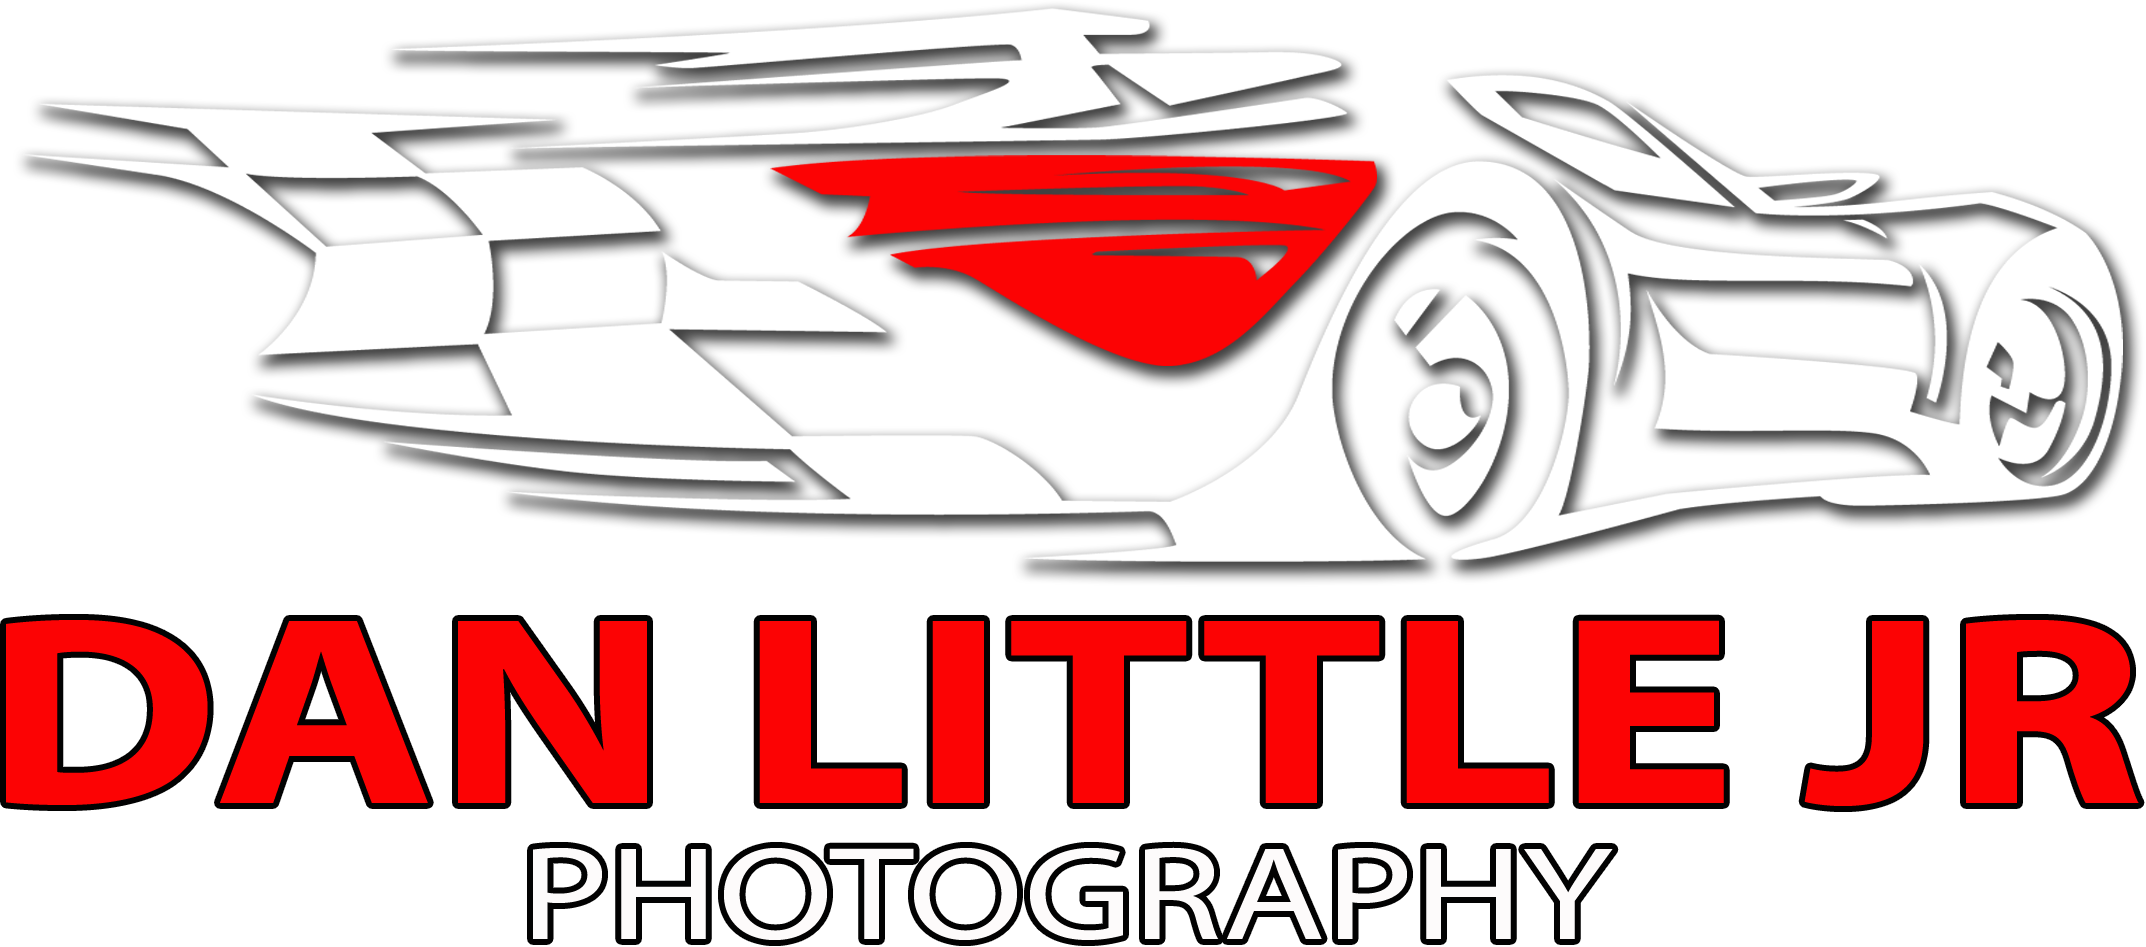 Dan Little Jr Photography Logo